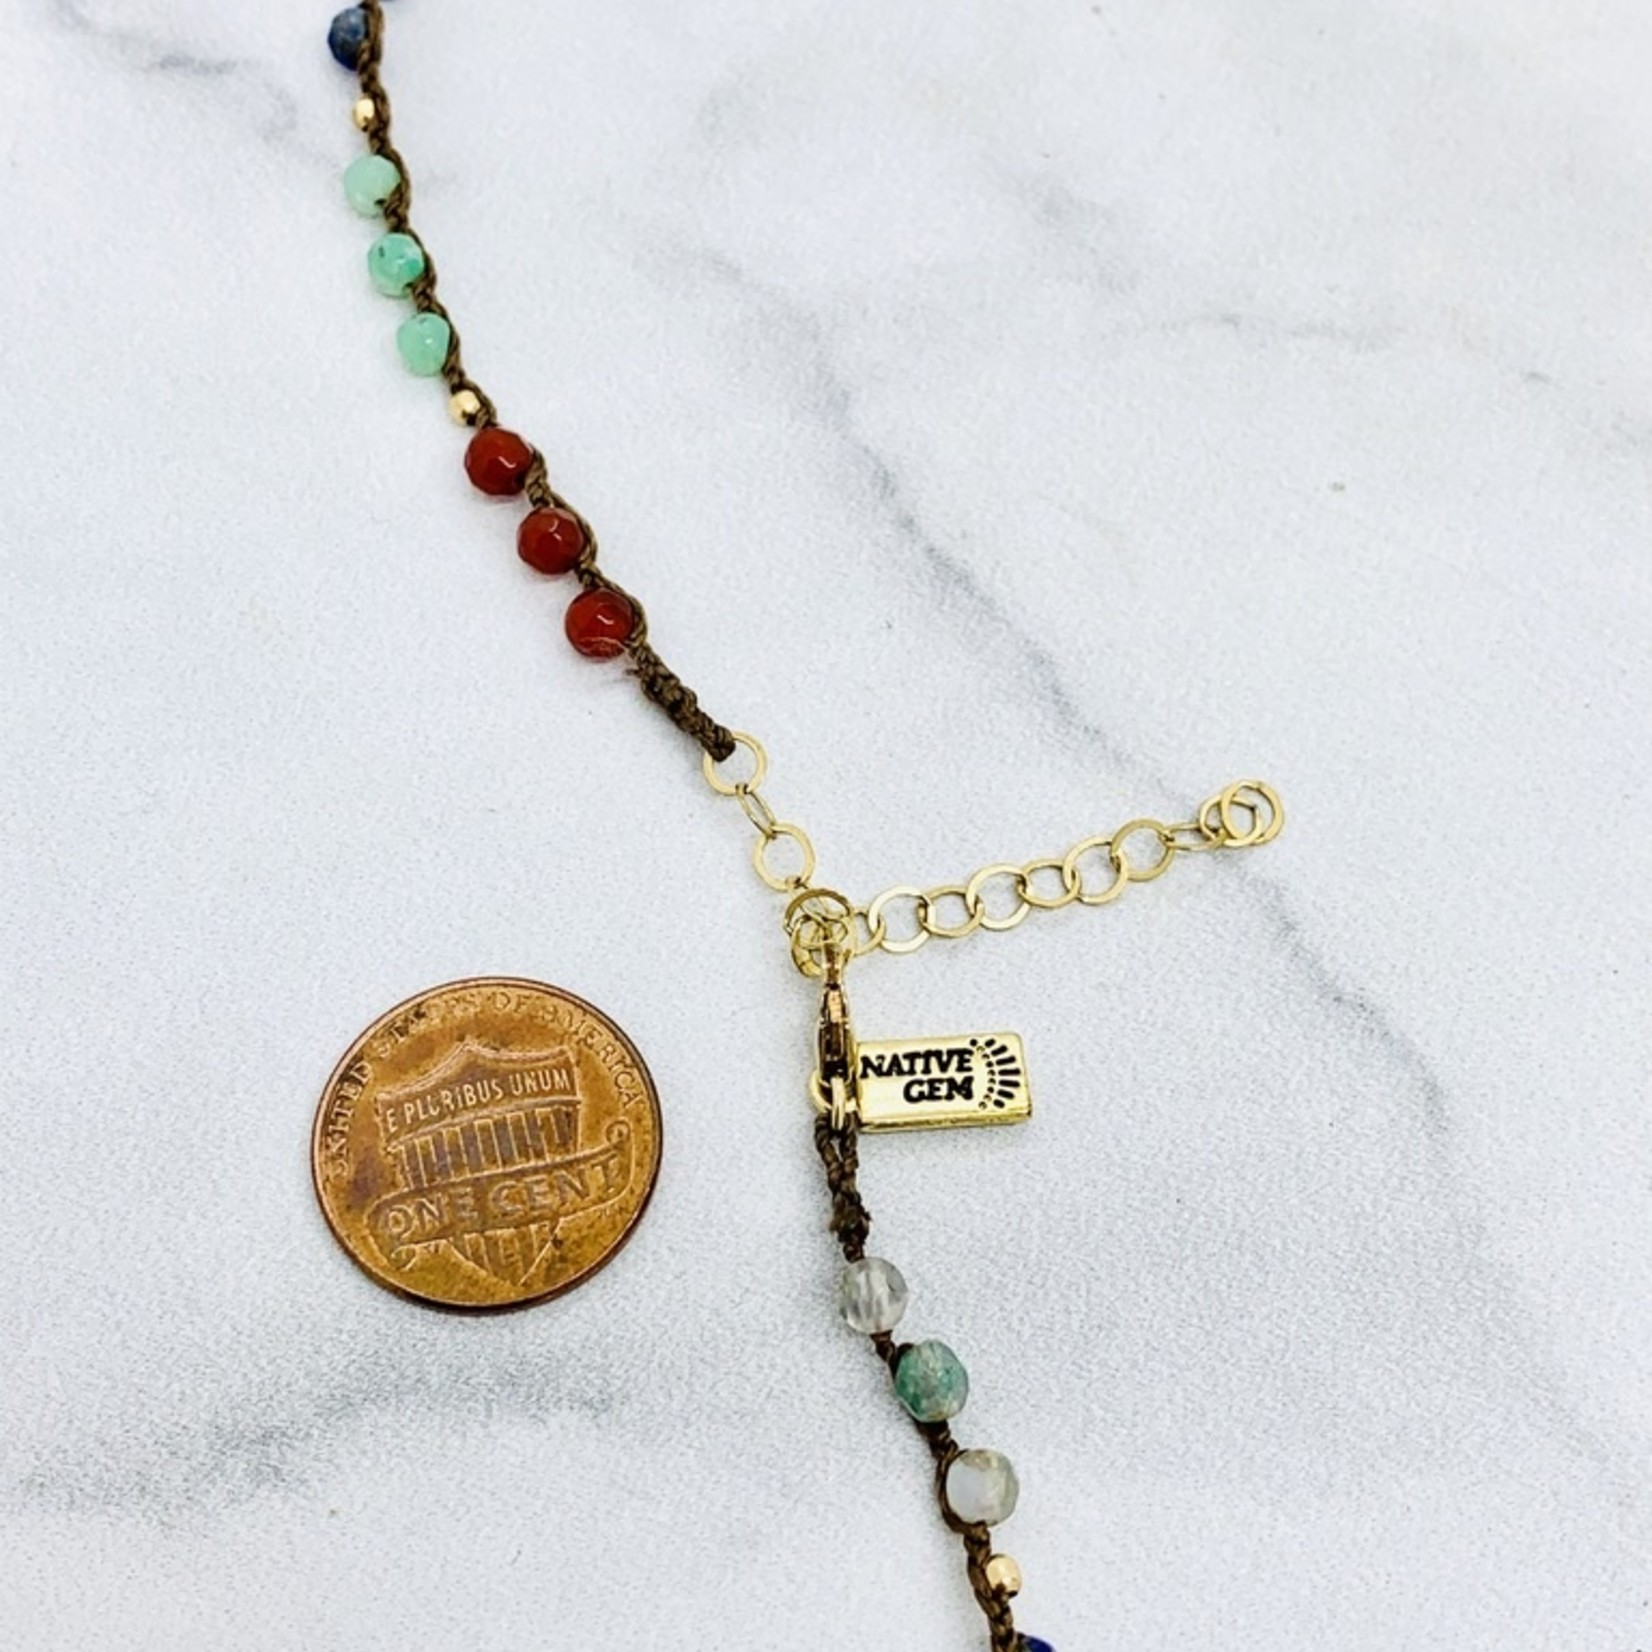 "Native Gems CHAKRA 14K wrap-necklace, 32"" with carnelian, agate, apatite, lapis lazuli, chrysoprase and green agate with 14K goldfill beads"